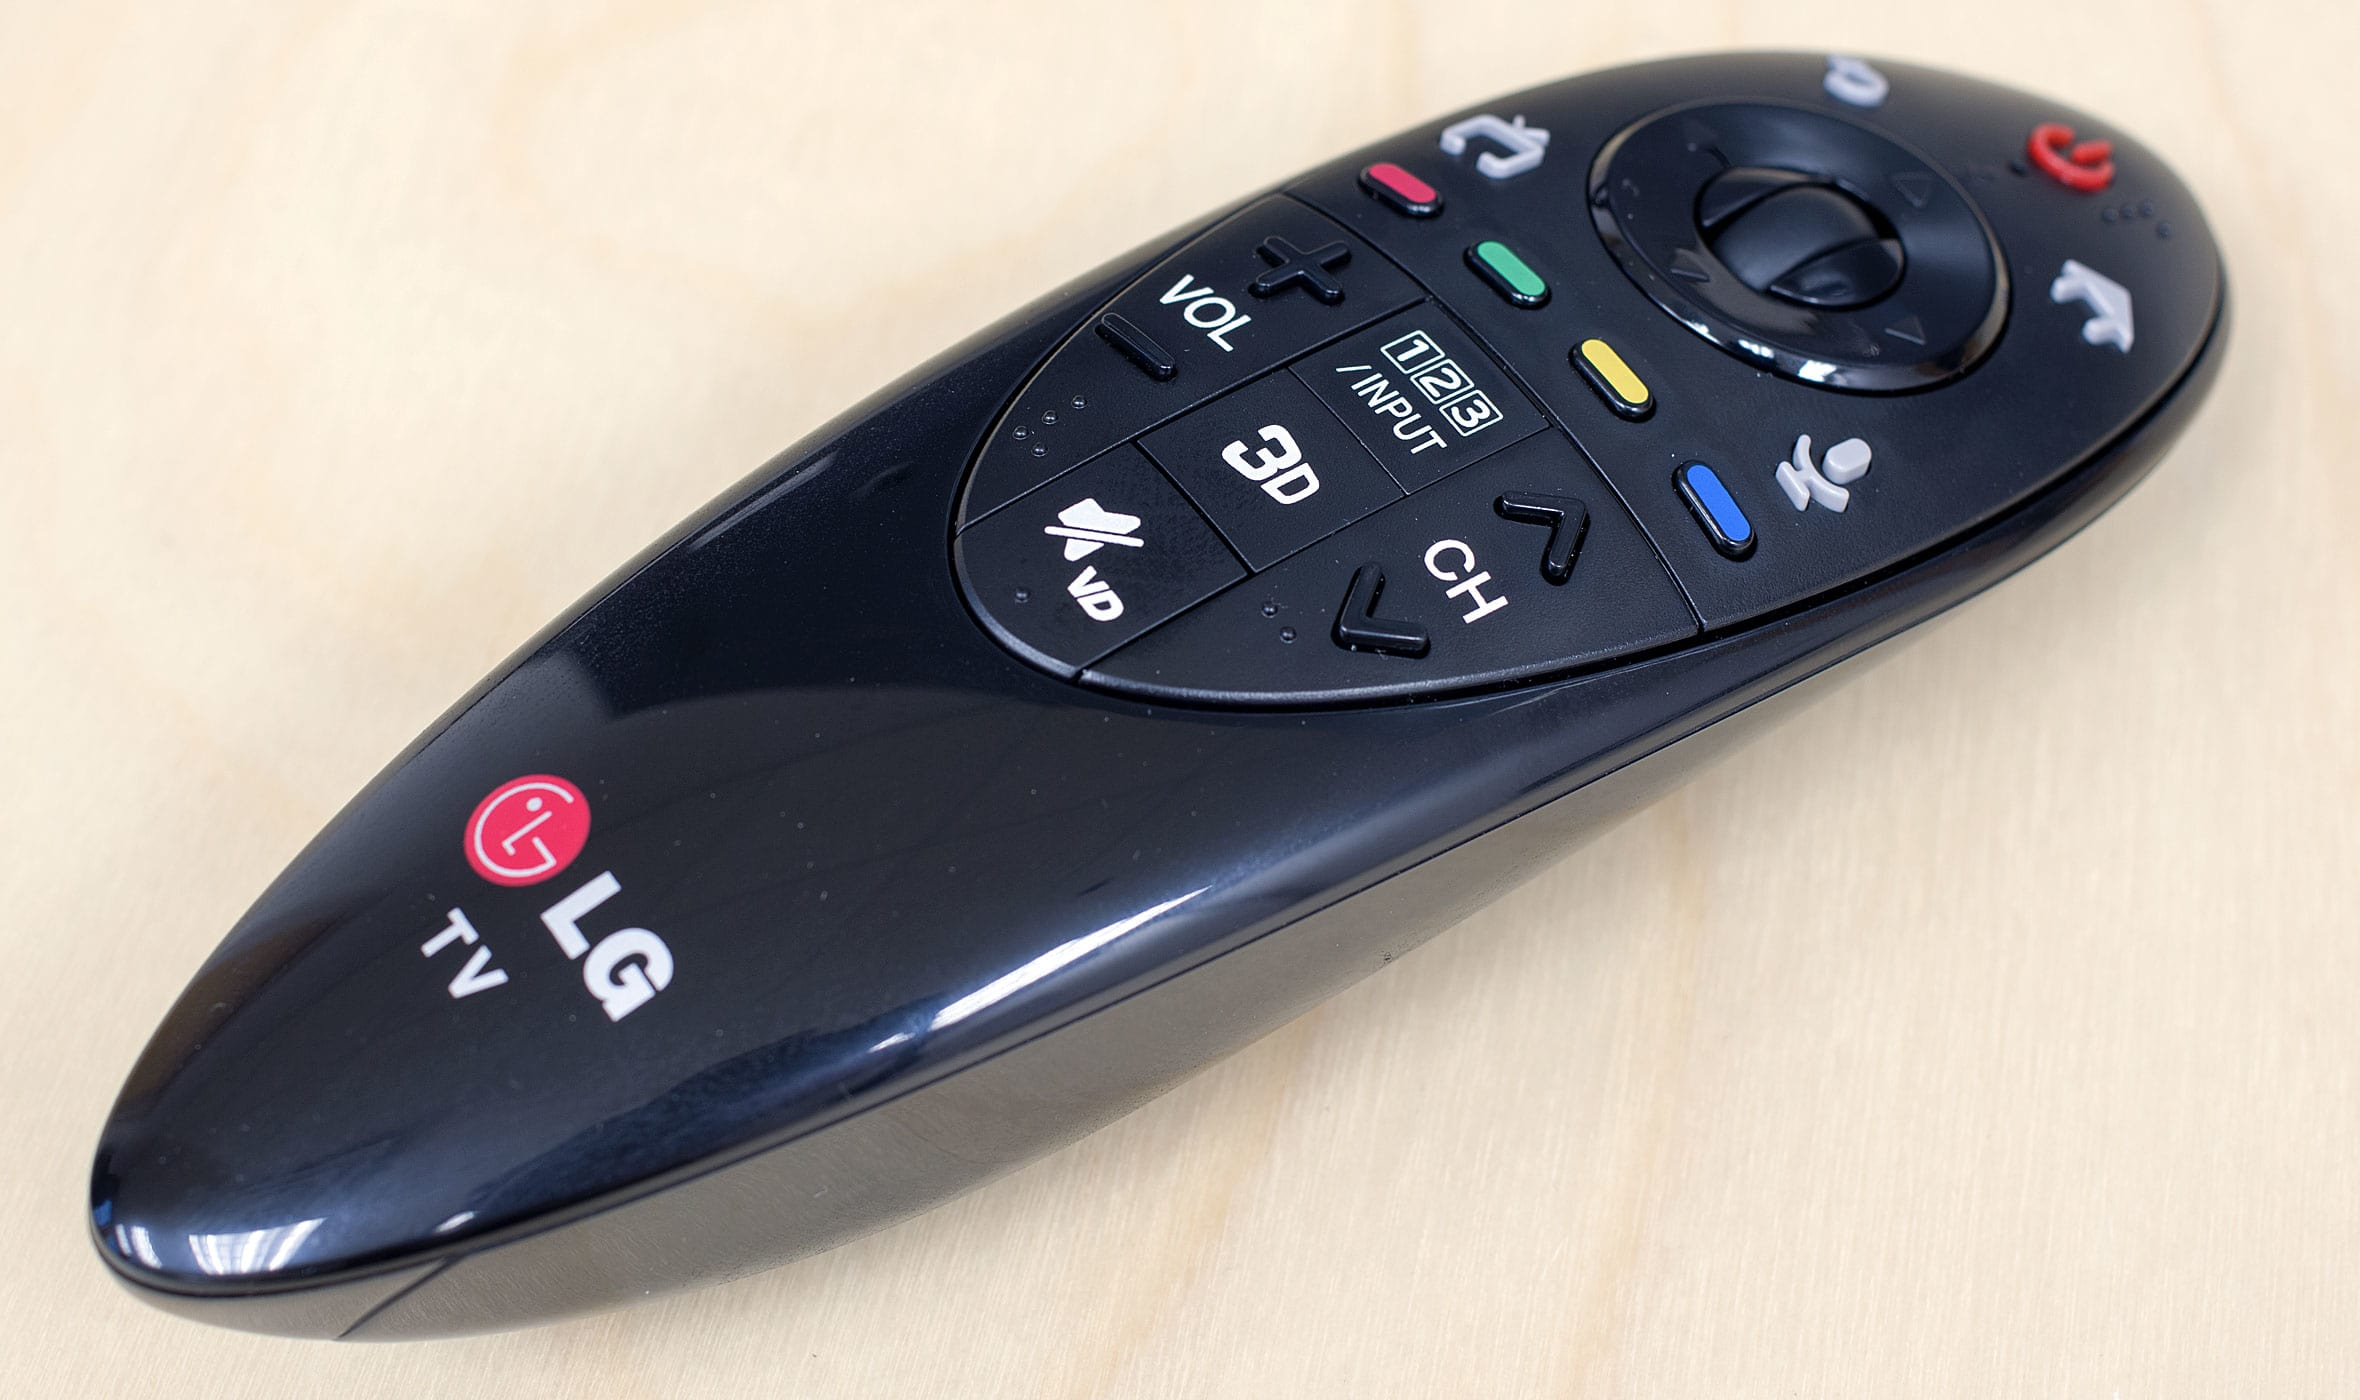 LG 60LB7100 magic remote